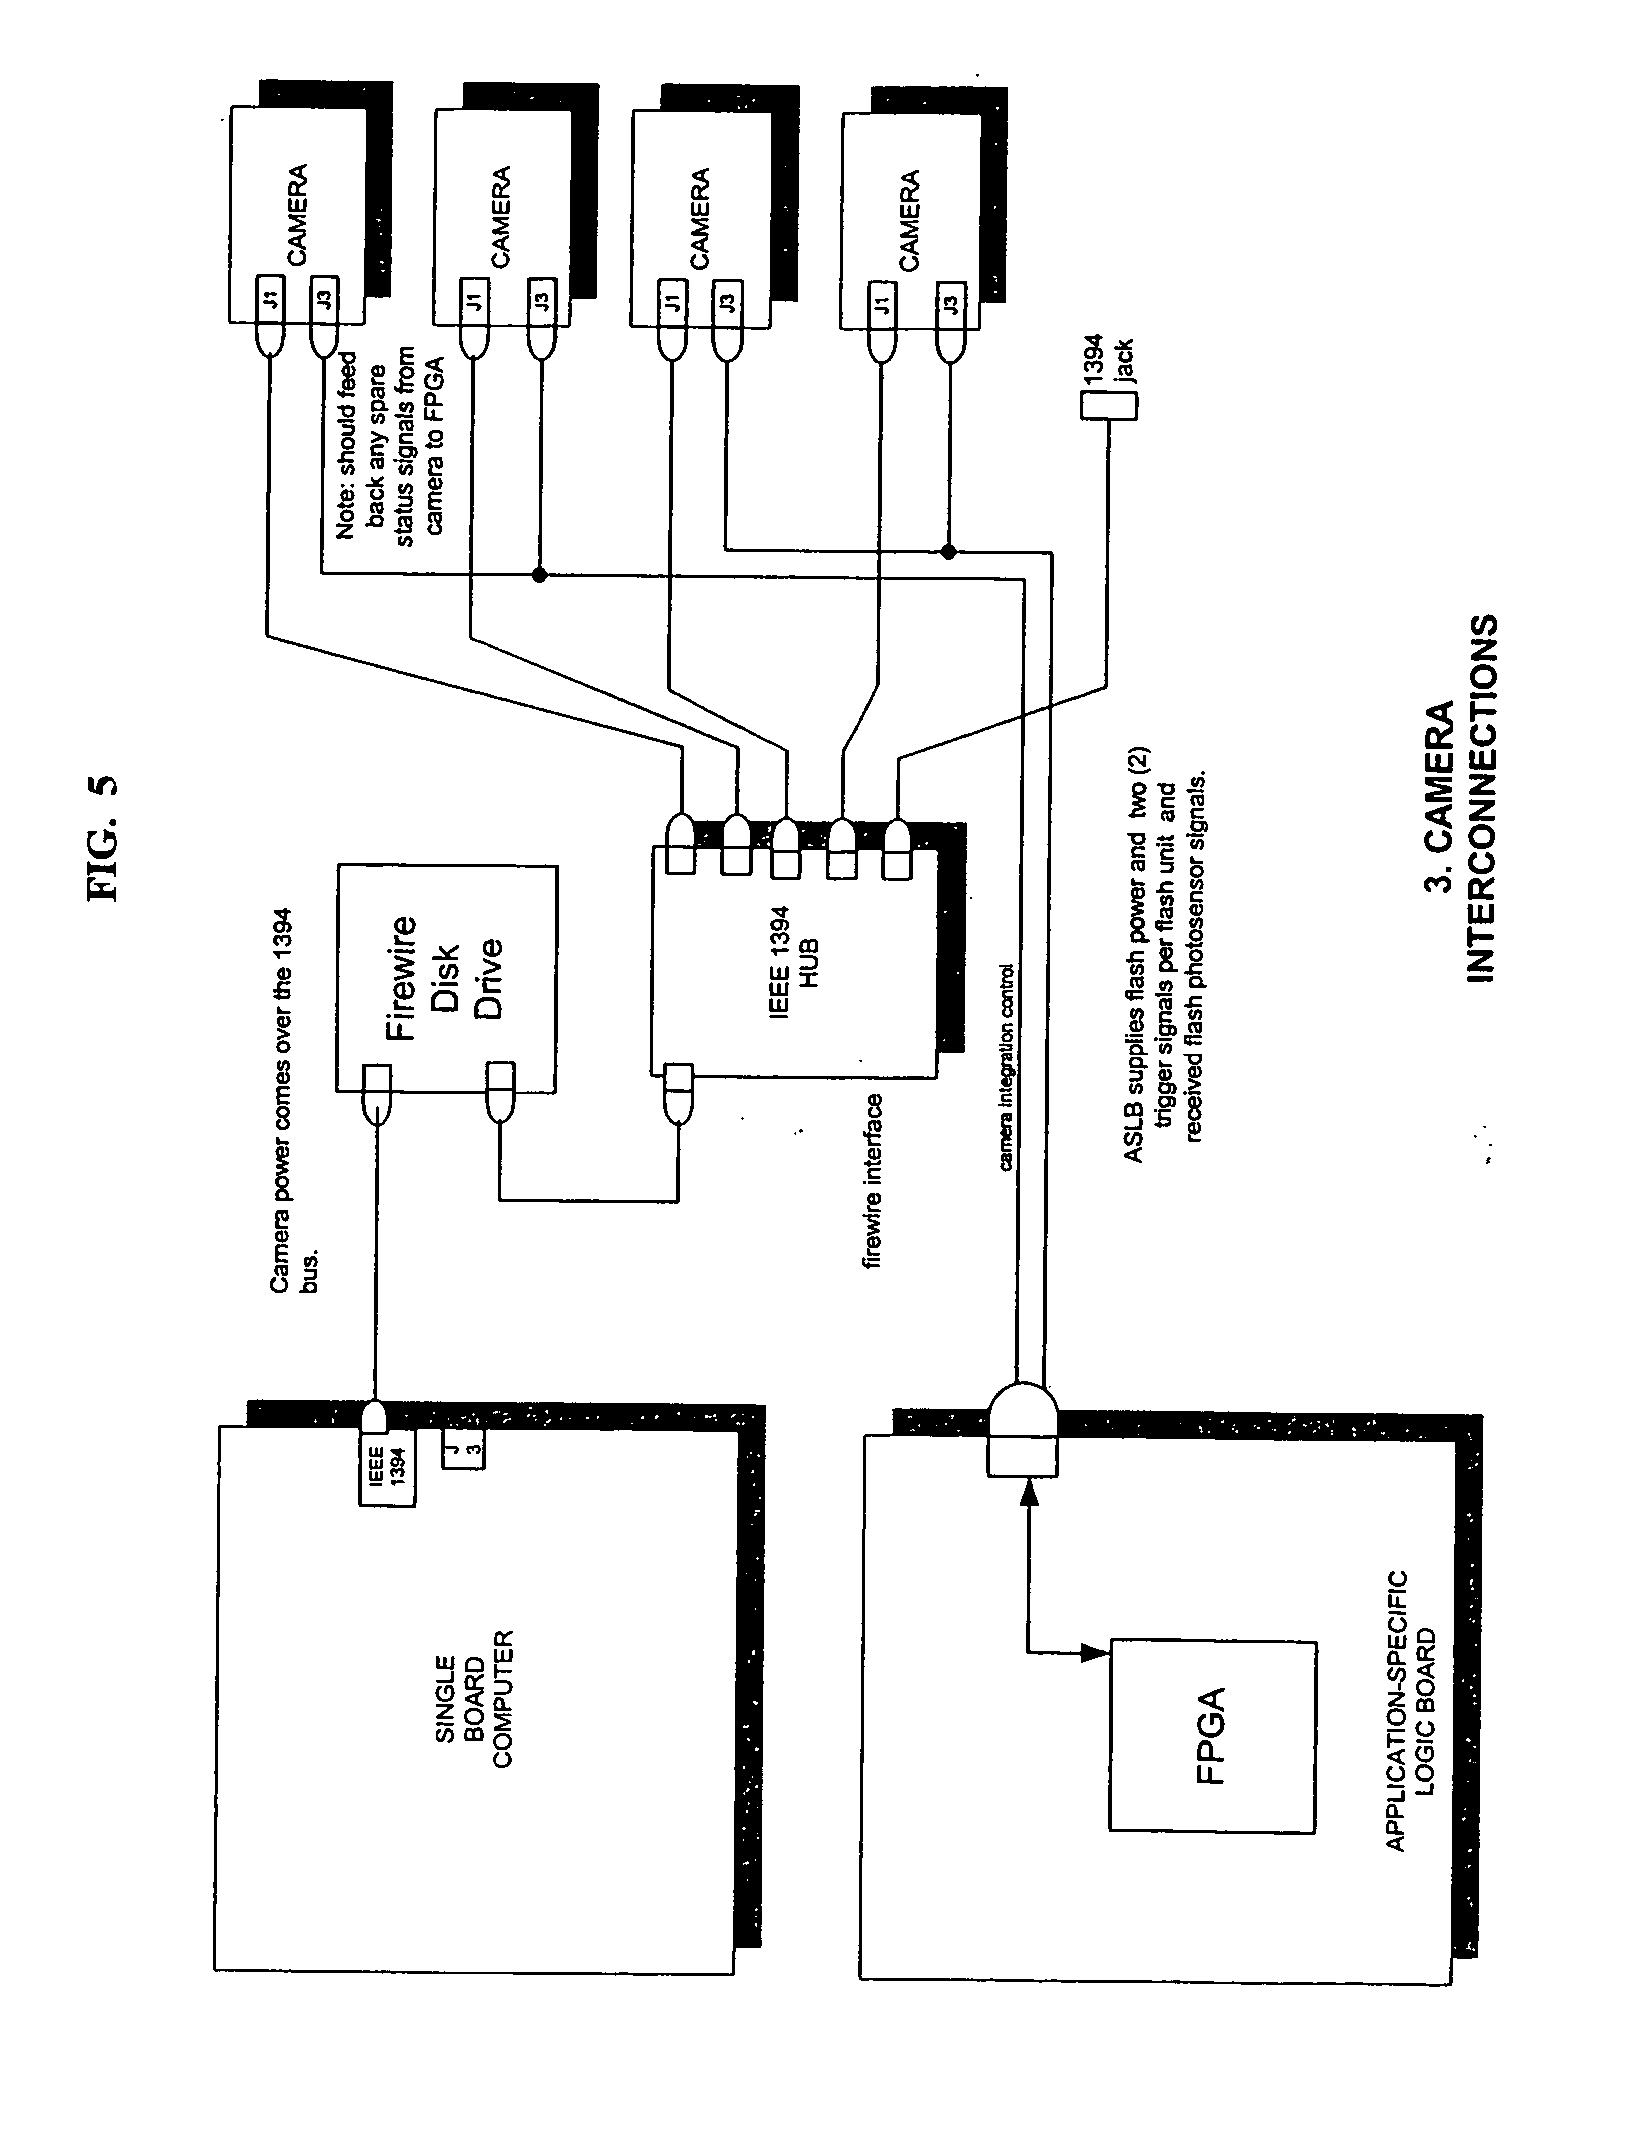 Patent Us20050272512 Launch Monitor Google Patents Firewire Diagram Drawing